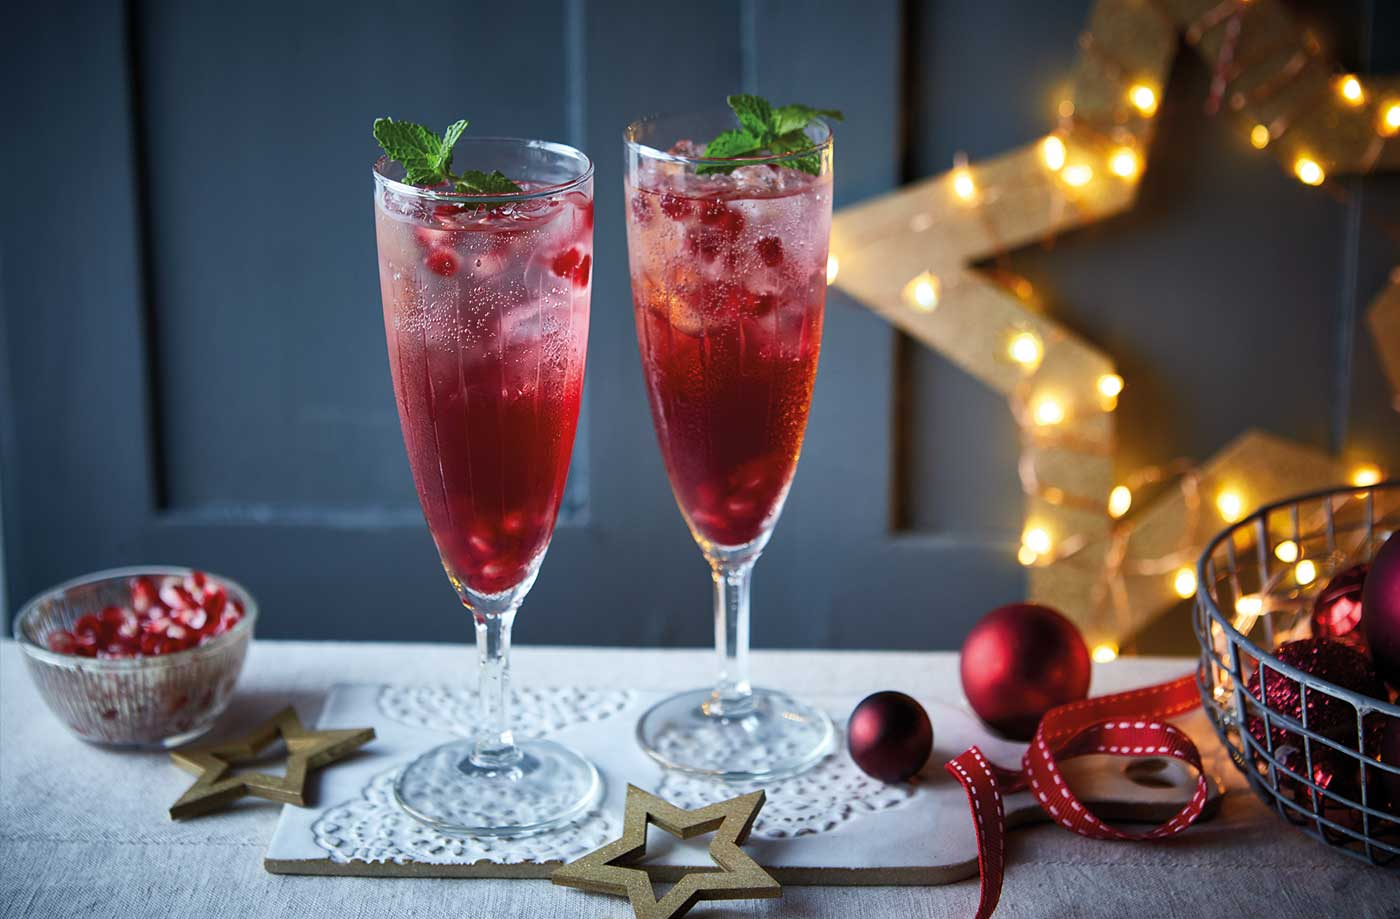 Cranberry and pomegranate punch